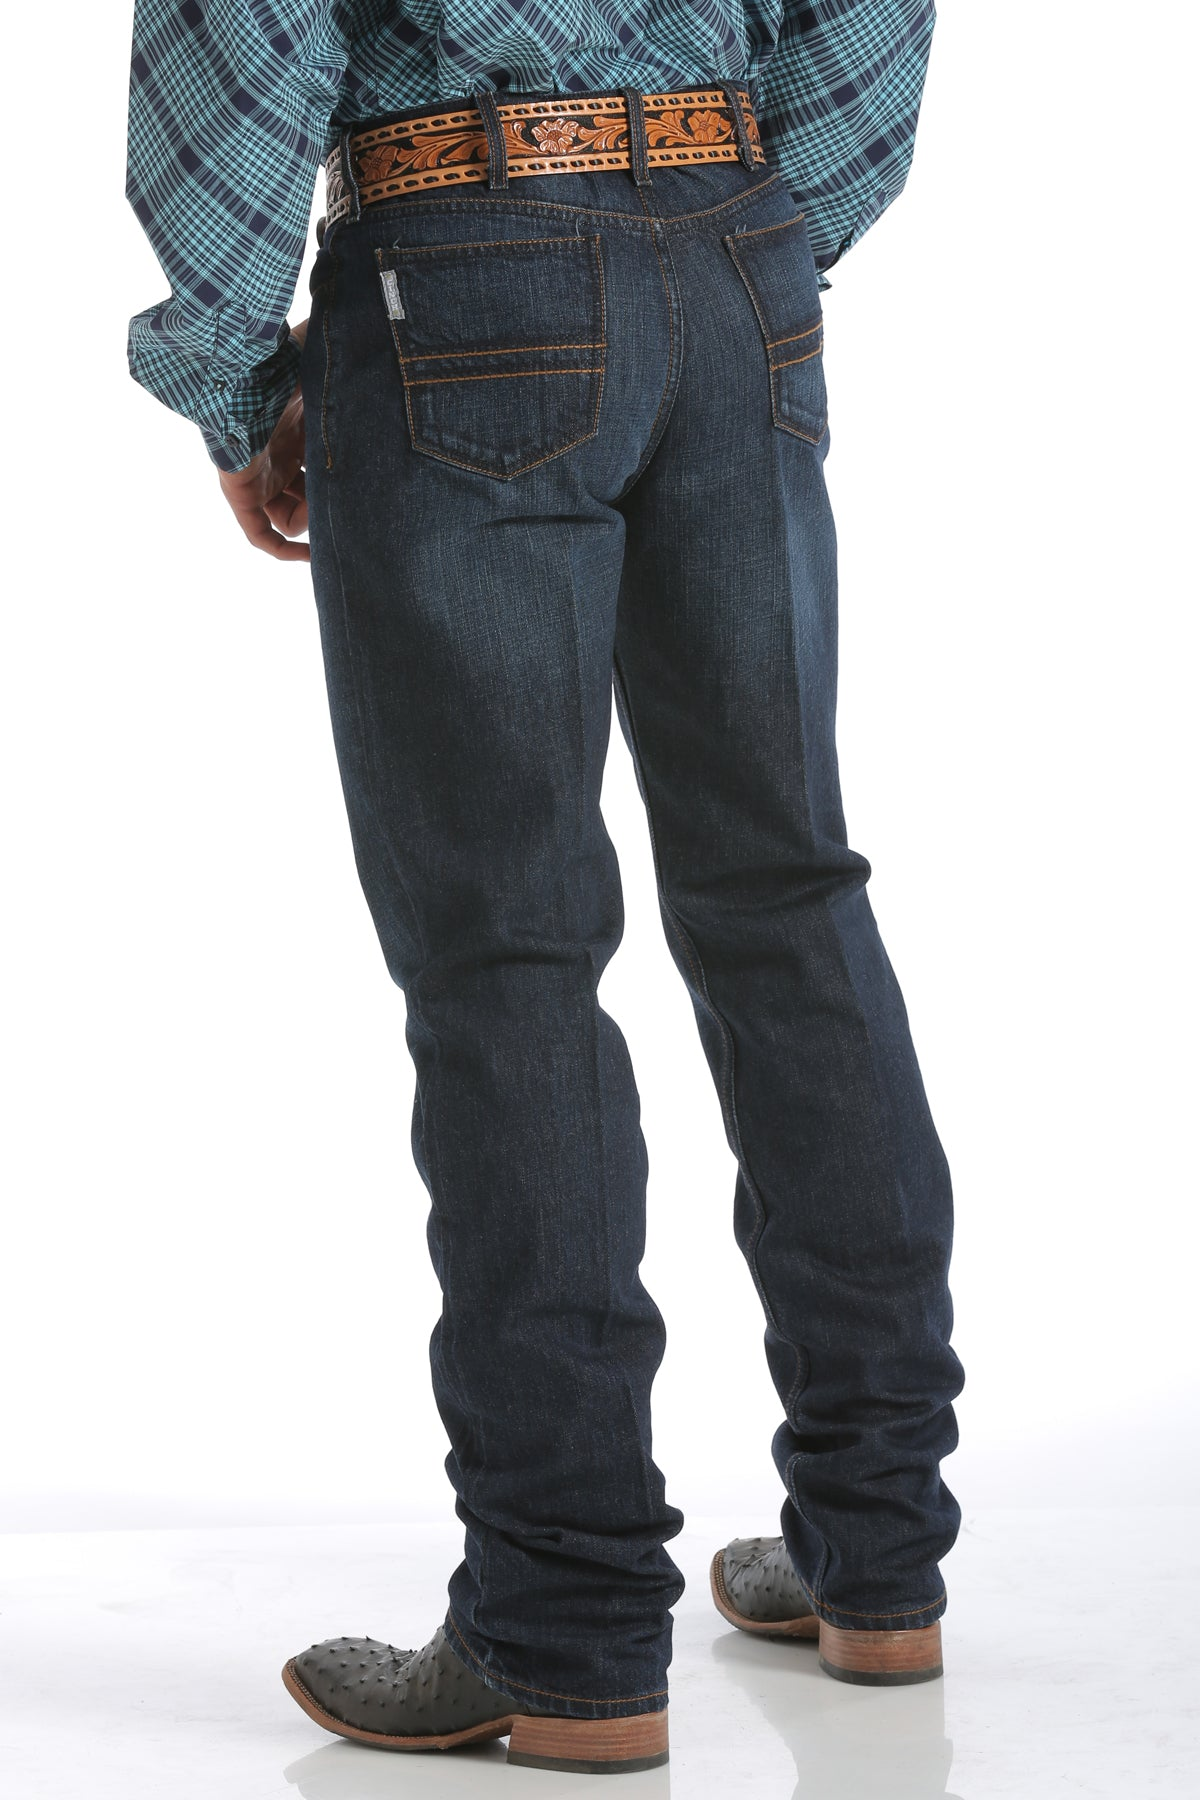 Cinch Men's Silver Label Jeans - Dark Stonewash